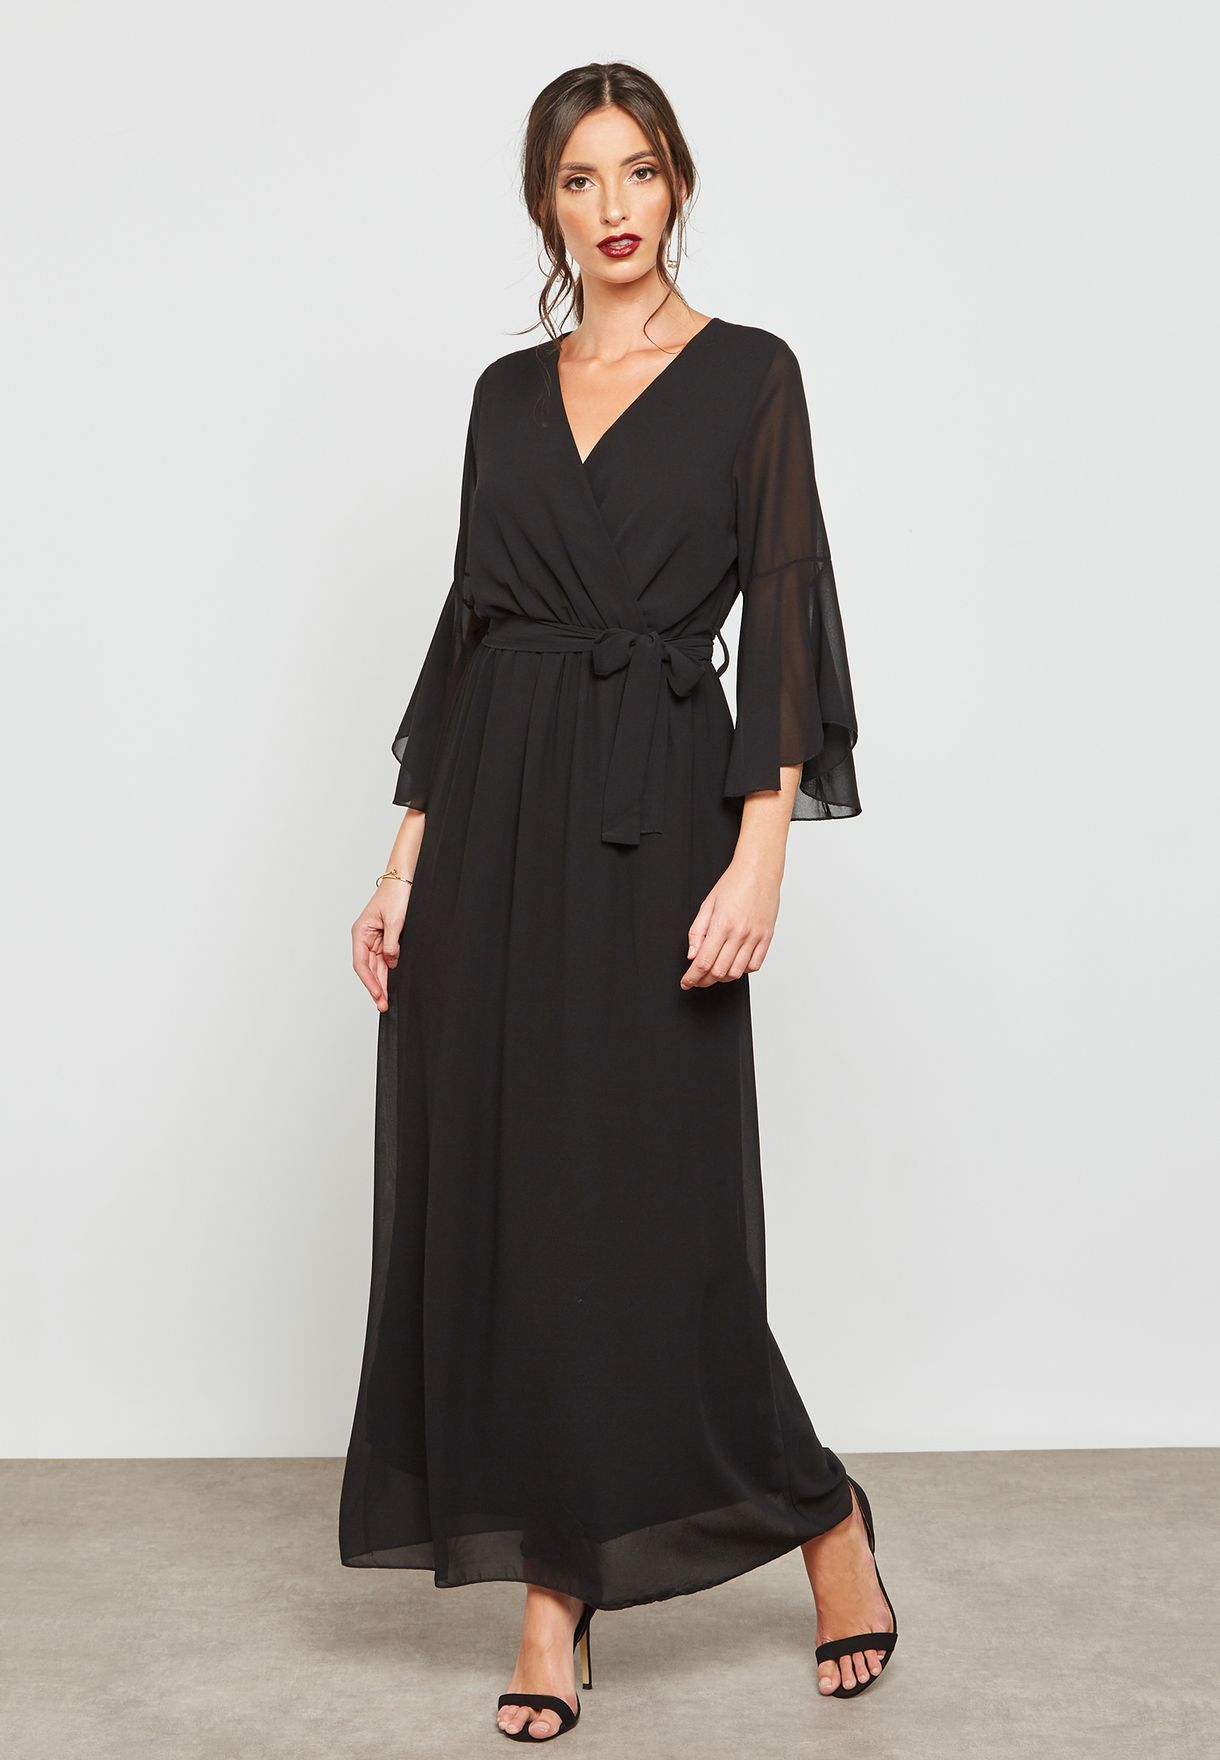 79021389b5a Shop Ella black Embroidered Dolman Sleeve Maxi Dress 7039(6974) for ...